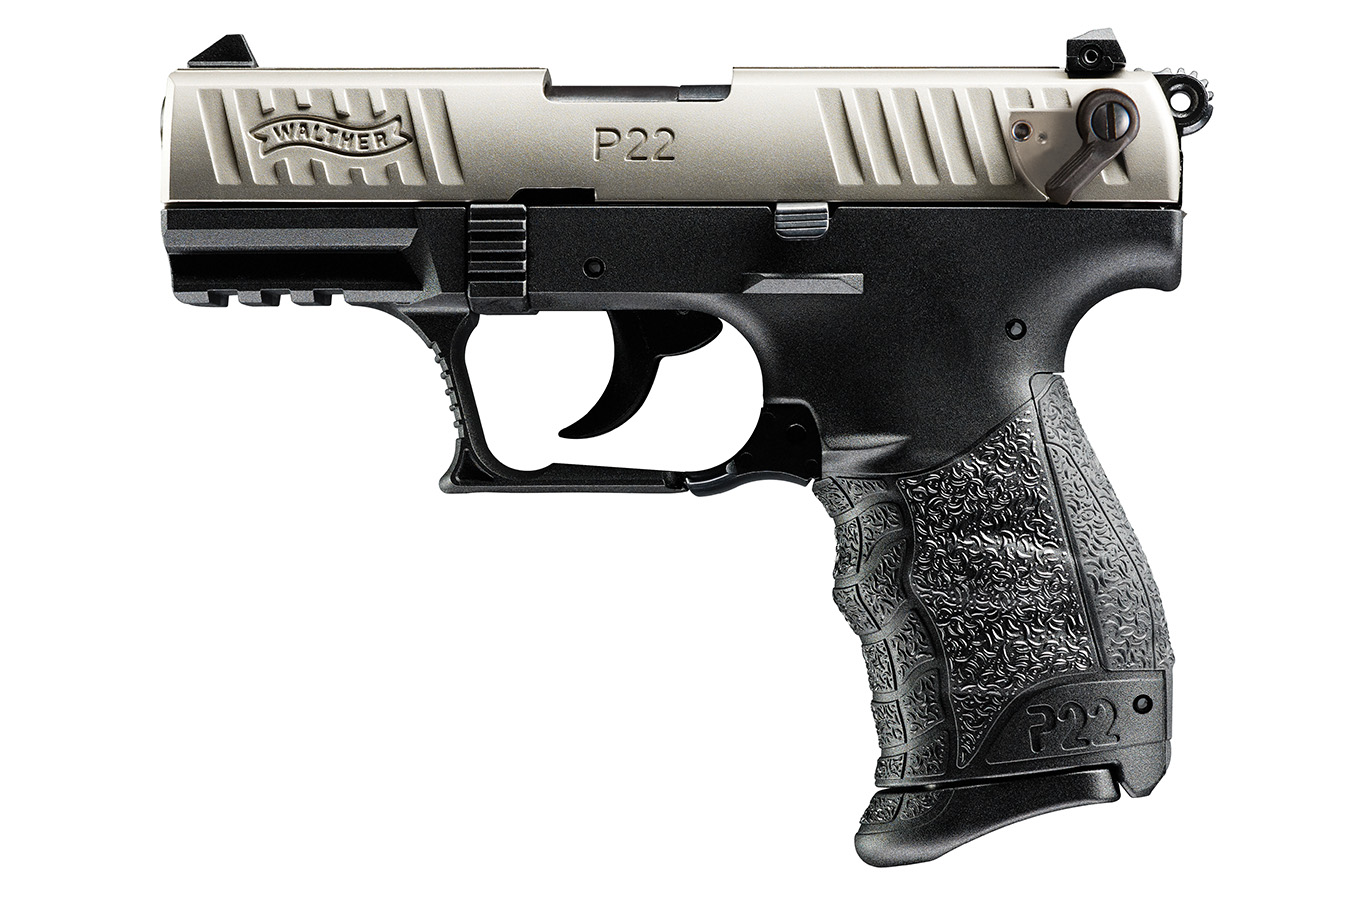 WALTHER P22 QD 22LR RIMFIRE PISTOL WITH NICKEL SLIDE